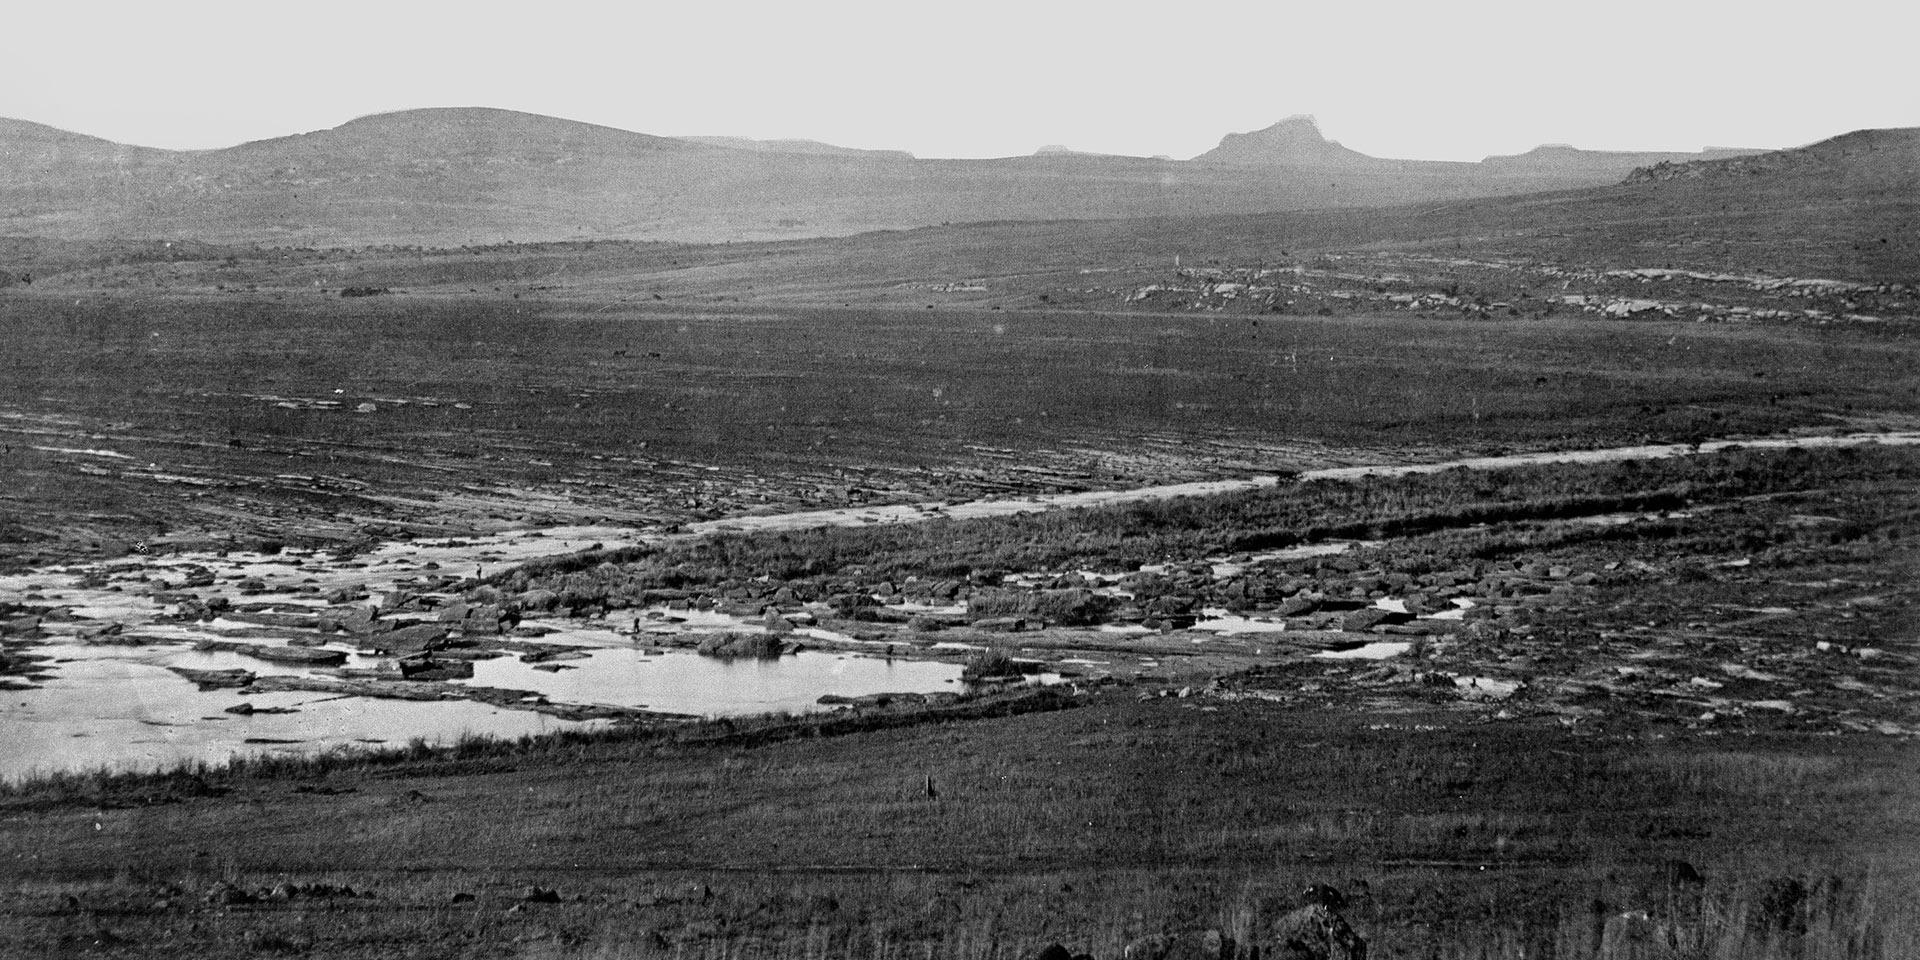 Rorke's Drift with Isandlwana in the distance, 1879